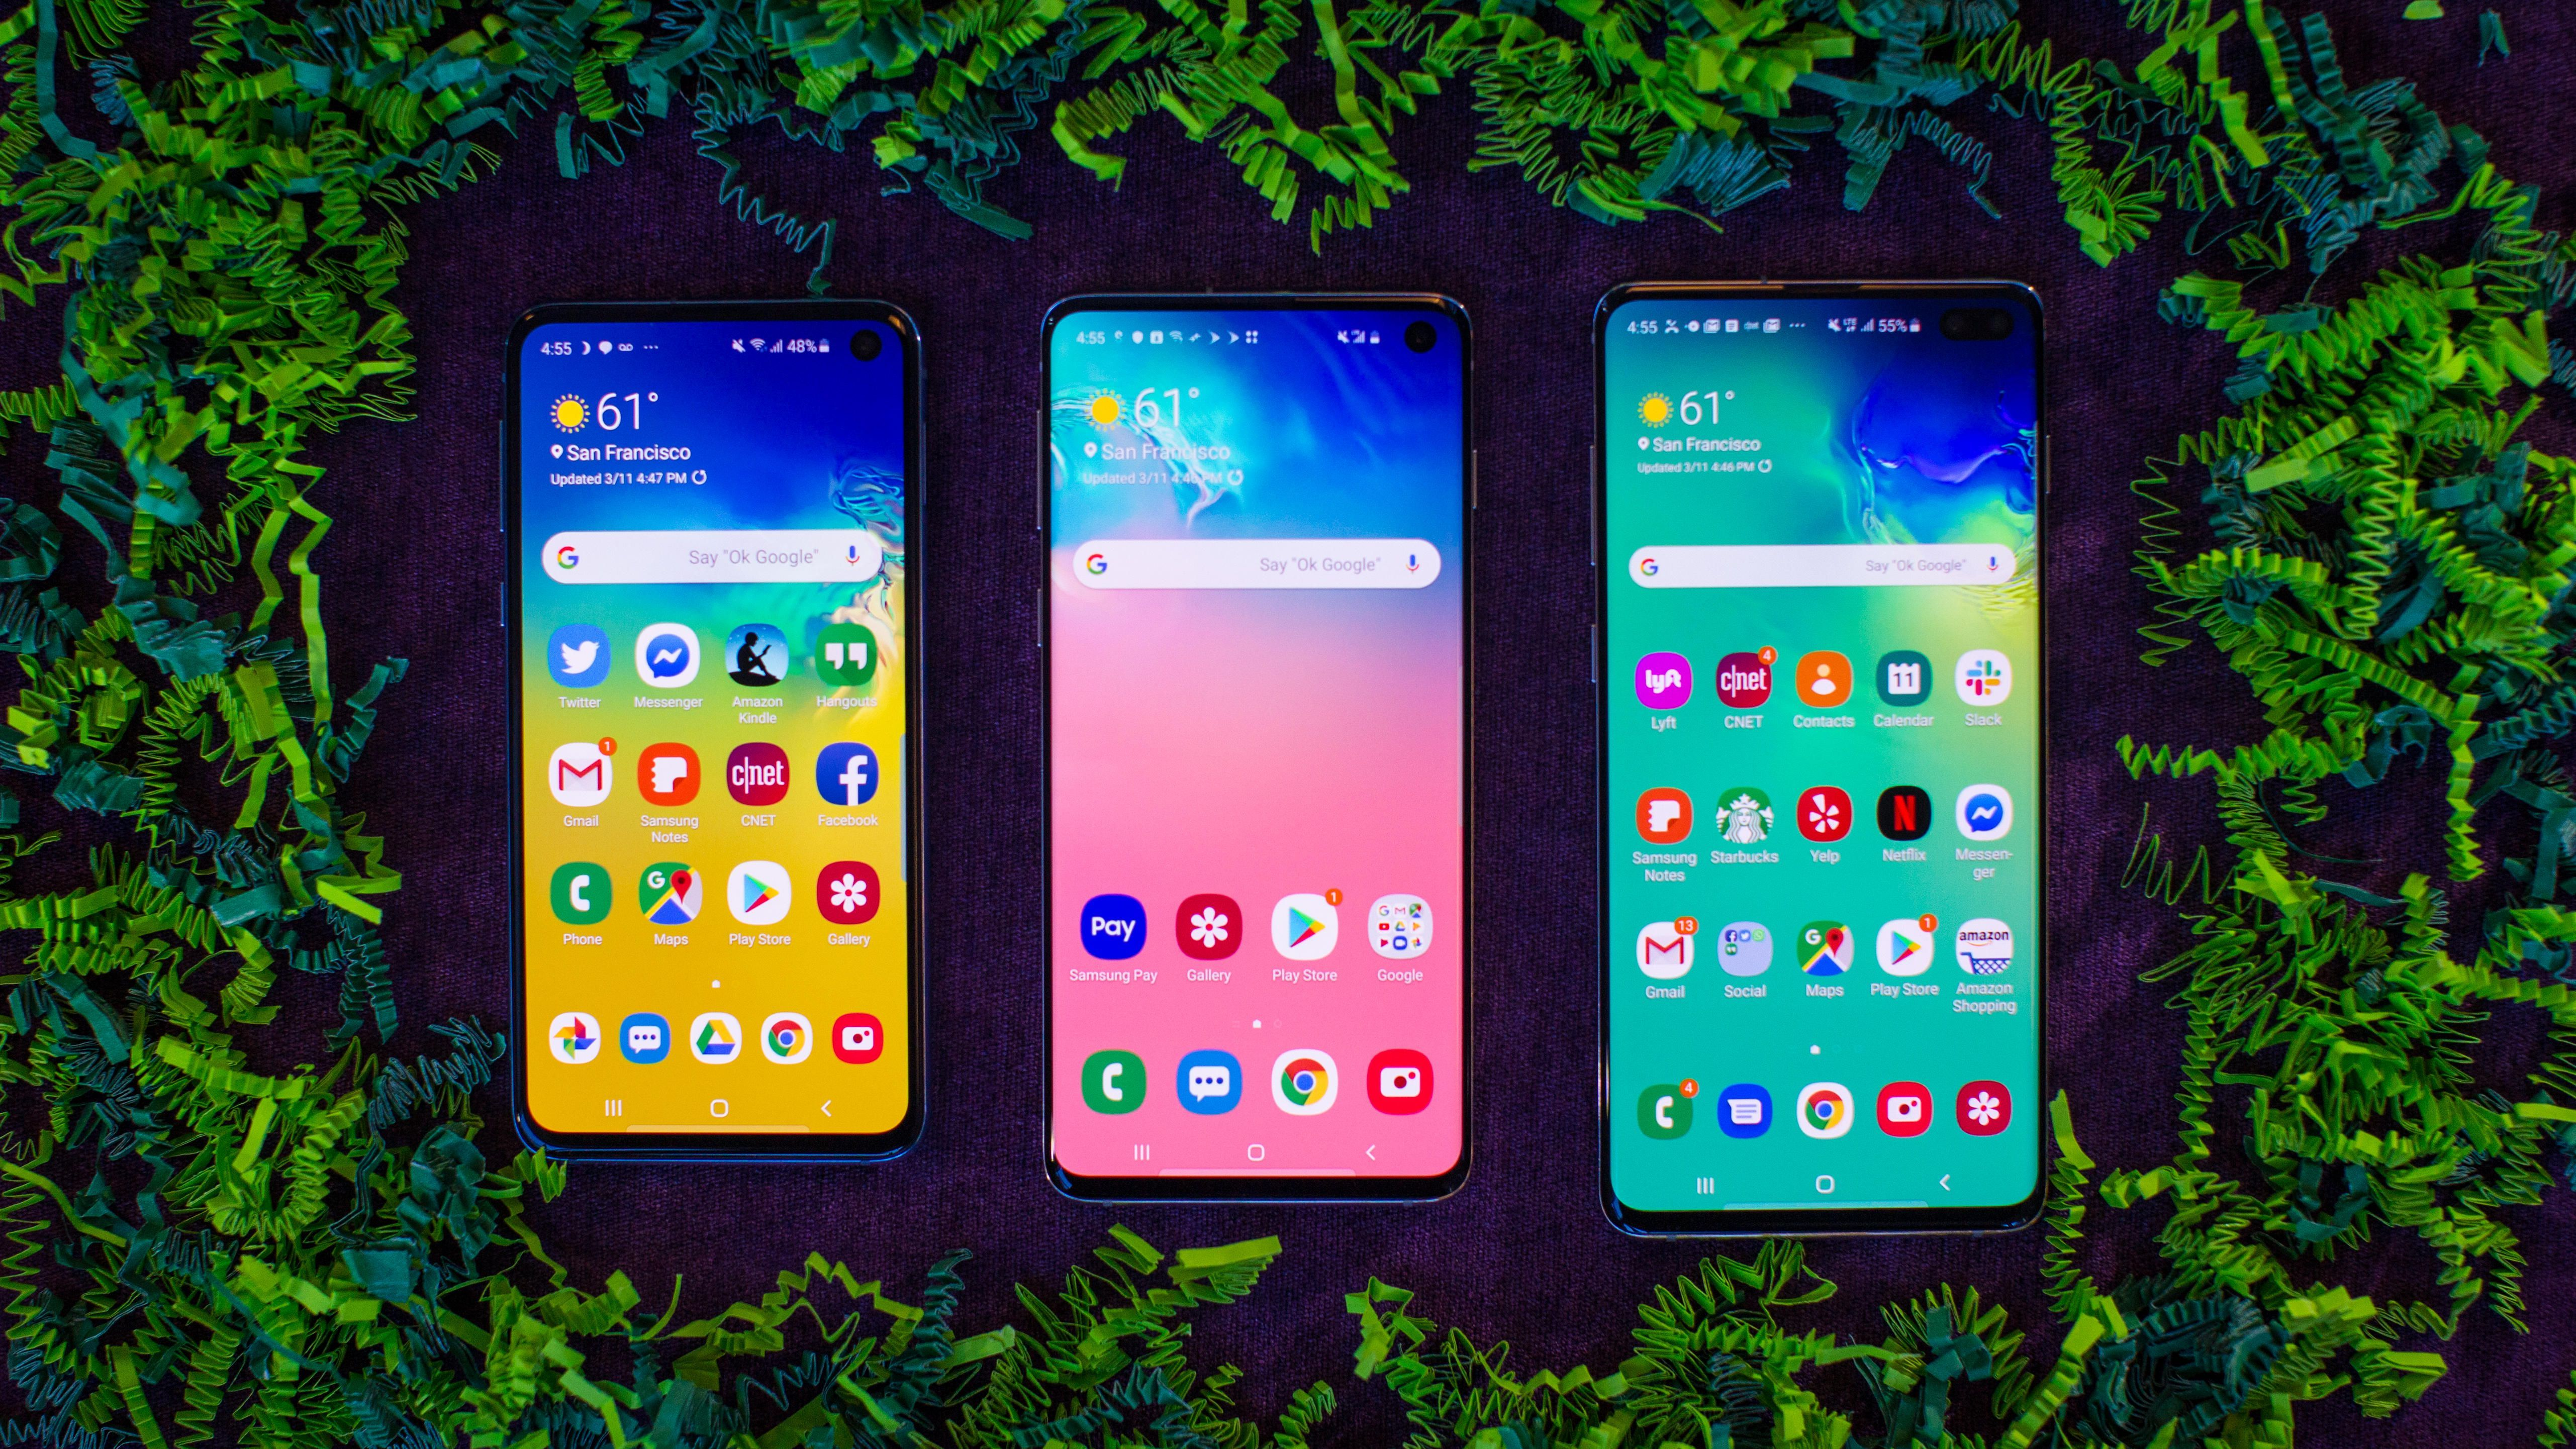 Galaxy S10 vs. Galaxy S9, S10 Plus, S10E, S10 5G: What's new and what's different?